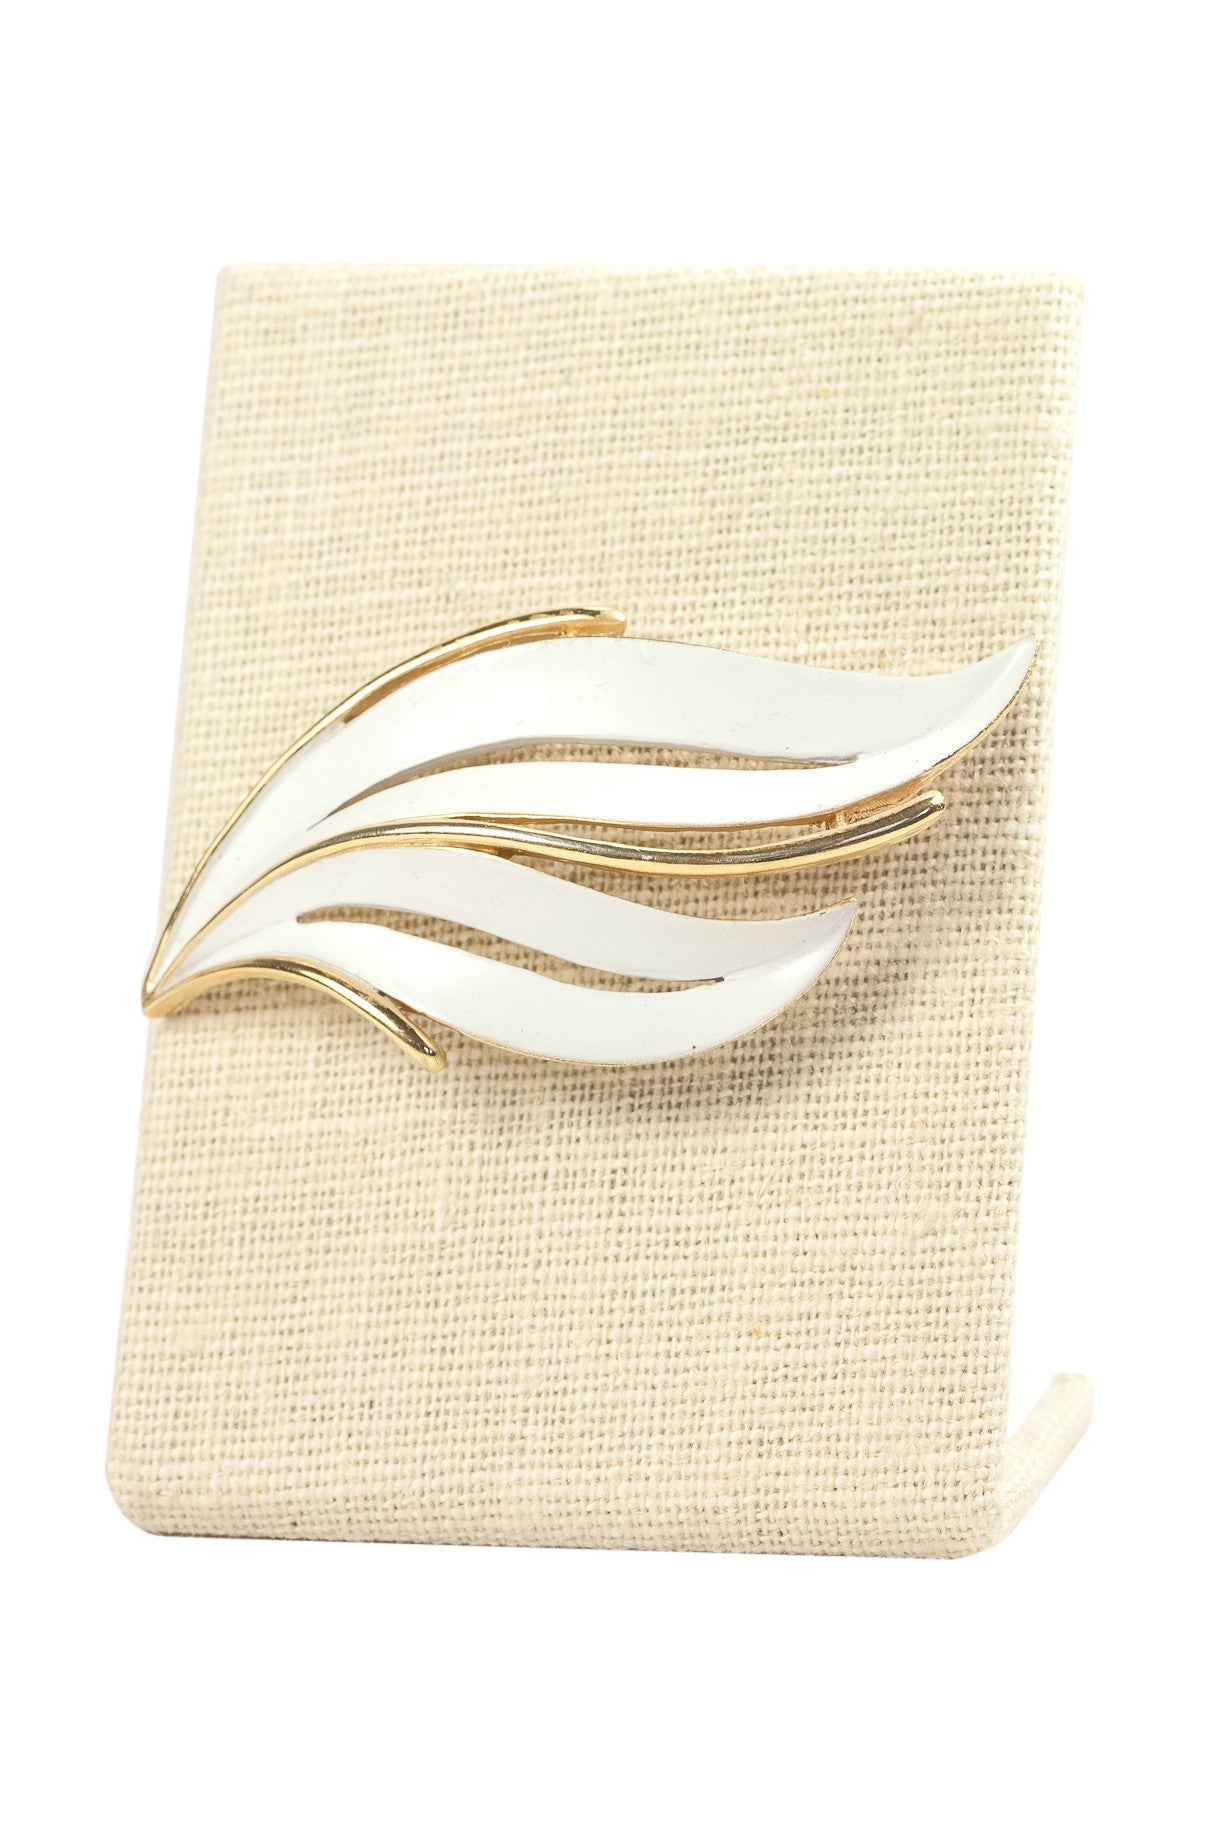 60's__Trifari__White Swirl Brooch